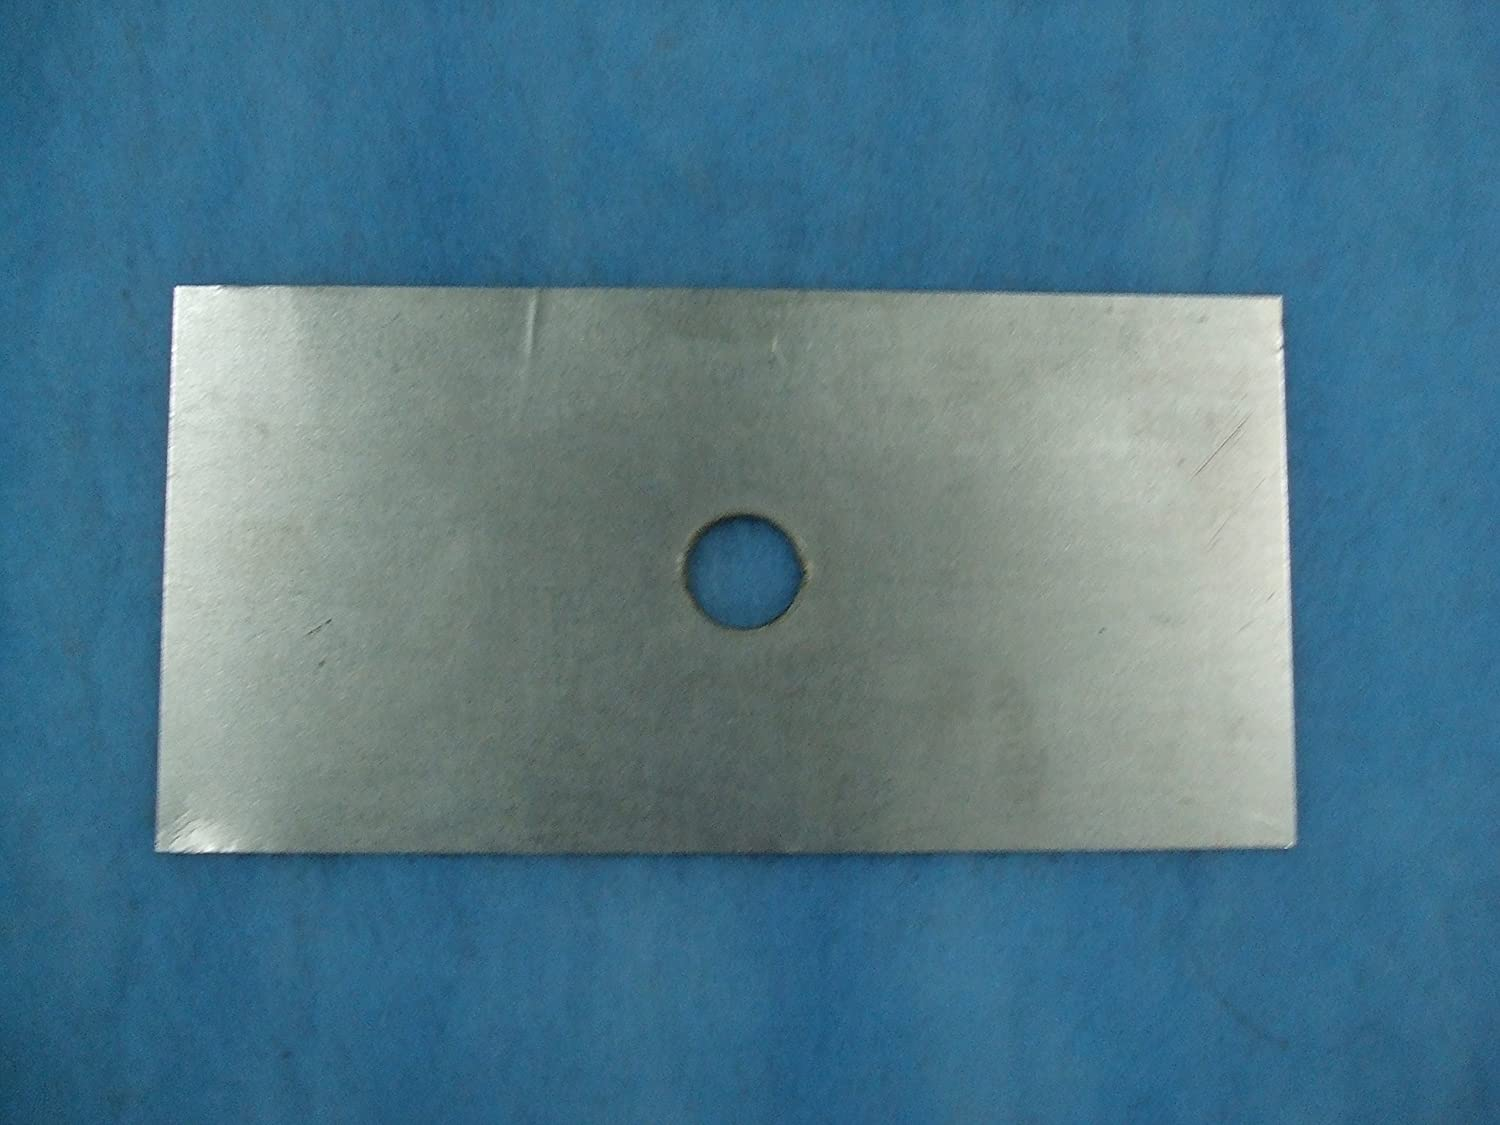 1000 x 400 Register plate with hole 135mm dia to suit 5' dia liner, no fixing brackets Ventilation Centre